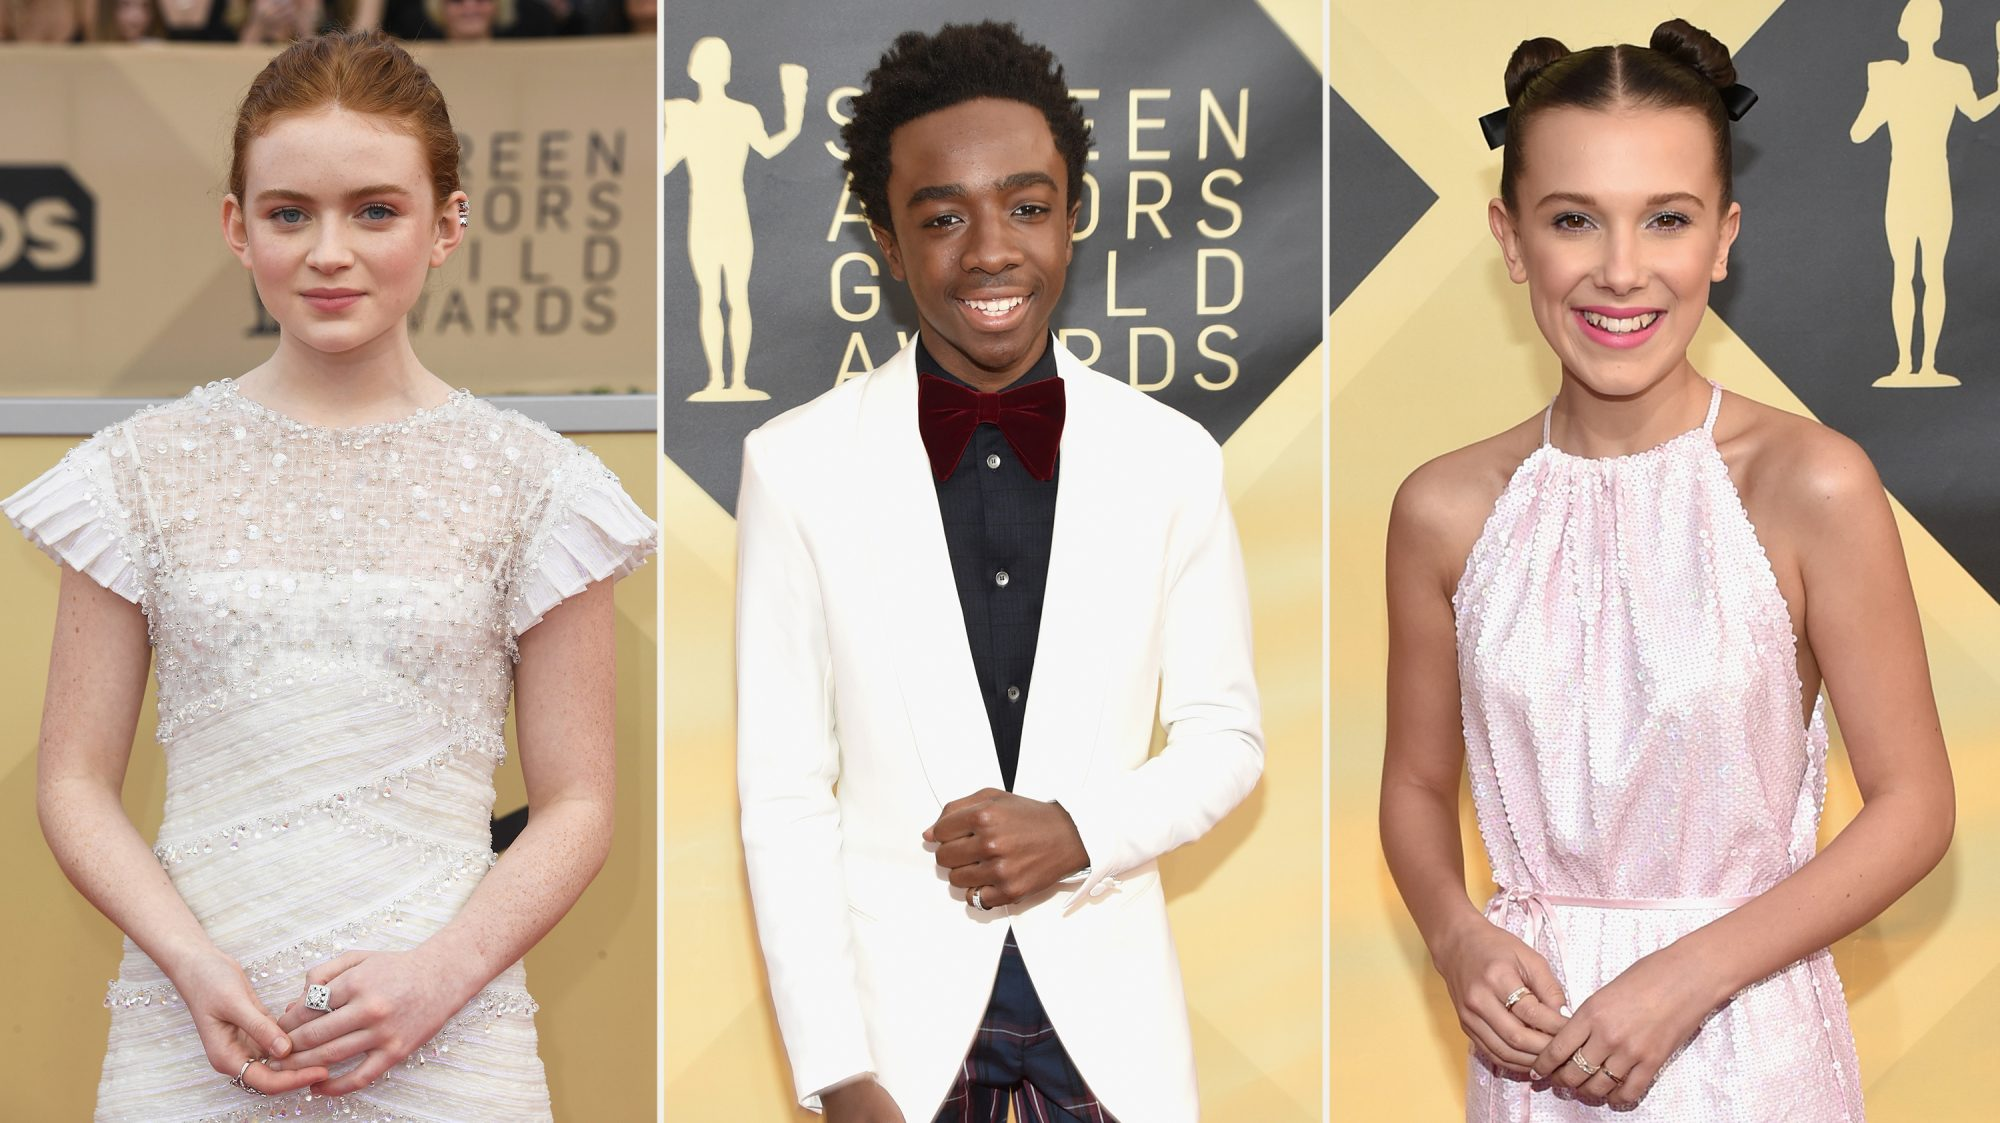 The Stranger Things Cast Shut Down the SAG Awards Red Carpet